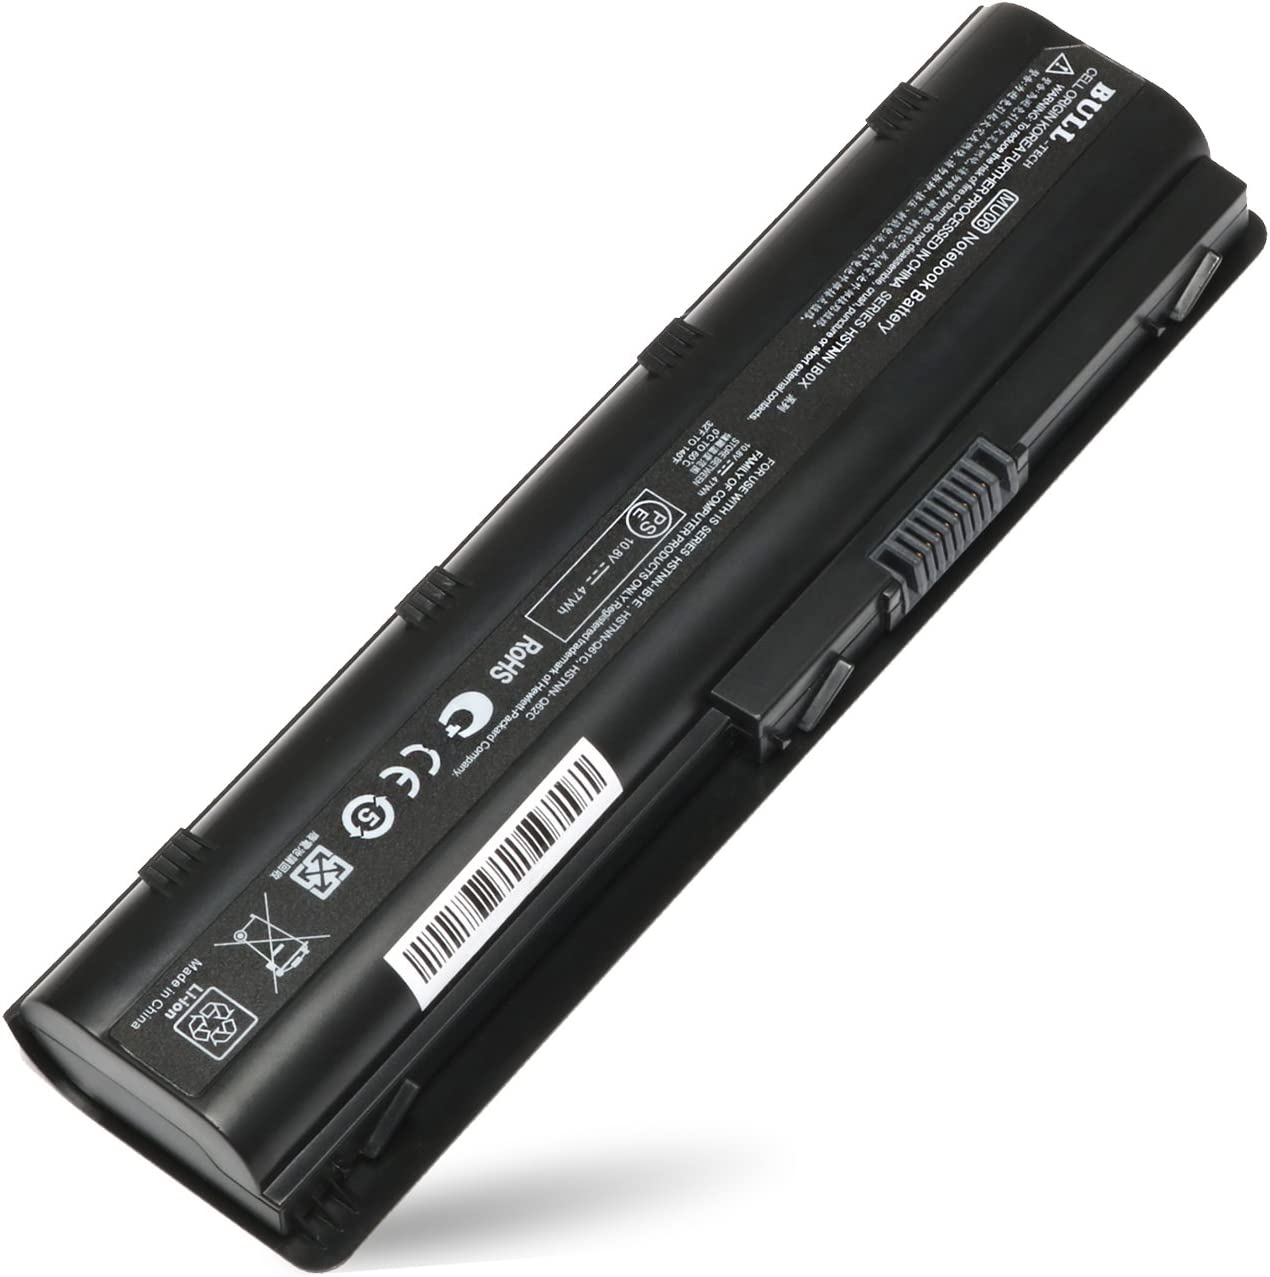 593553-001 593554-001 mu06 mu09 New Laptop Battery for HP Pavilion G6 G7 G6-1D38DX G6-1d21DX G6-1A30US G7-1260US 435, 436 Notebook PC- Li-ion 6-Cell 10.8V 47WH